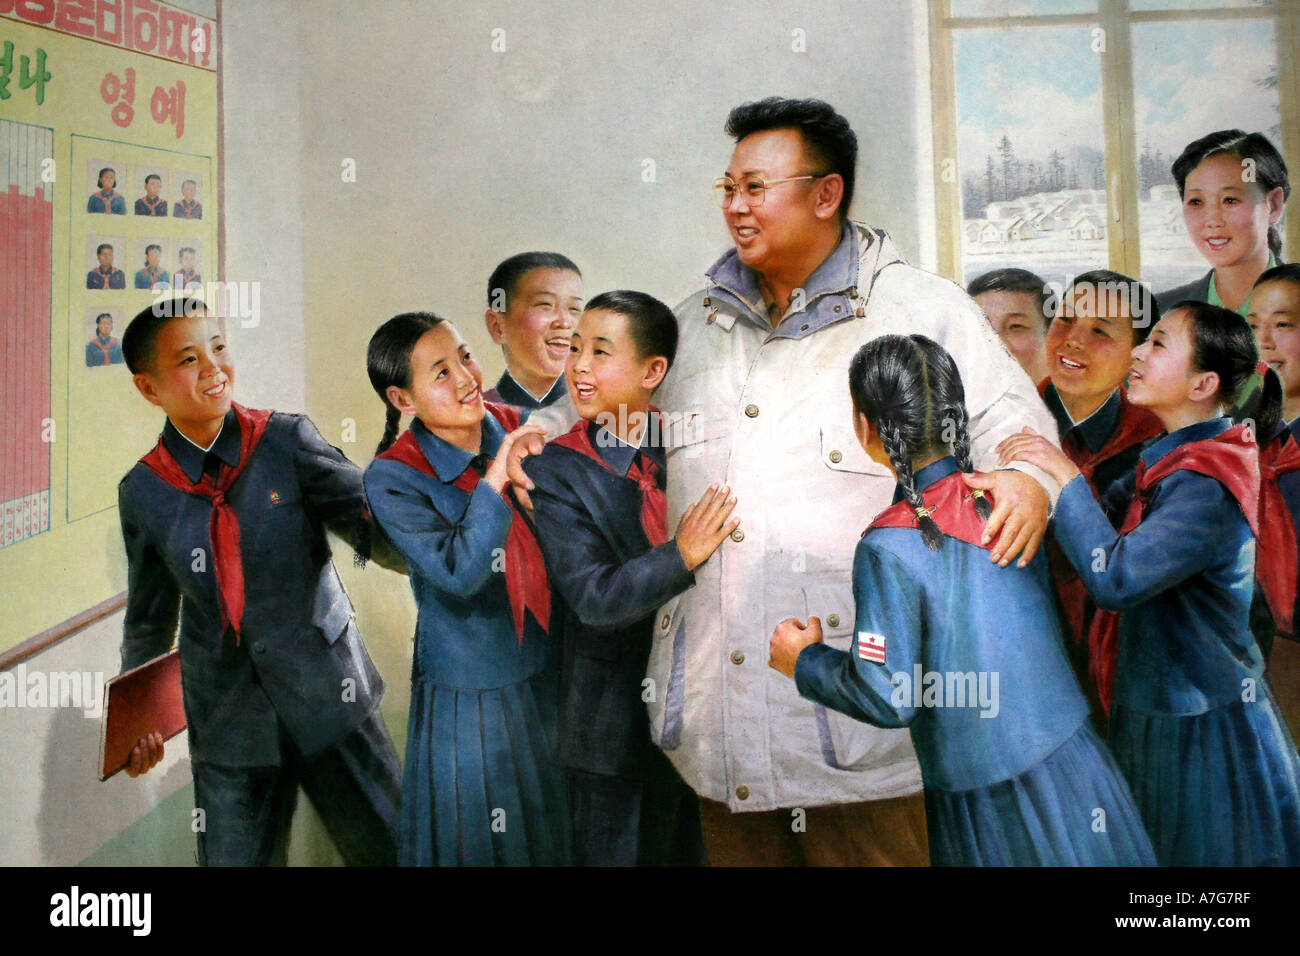 Painting in the Korean Art Museum of leader Kim Jong Il visiting children in a school - Stock Image